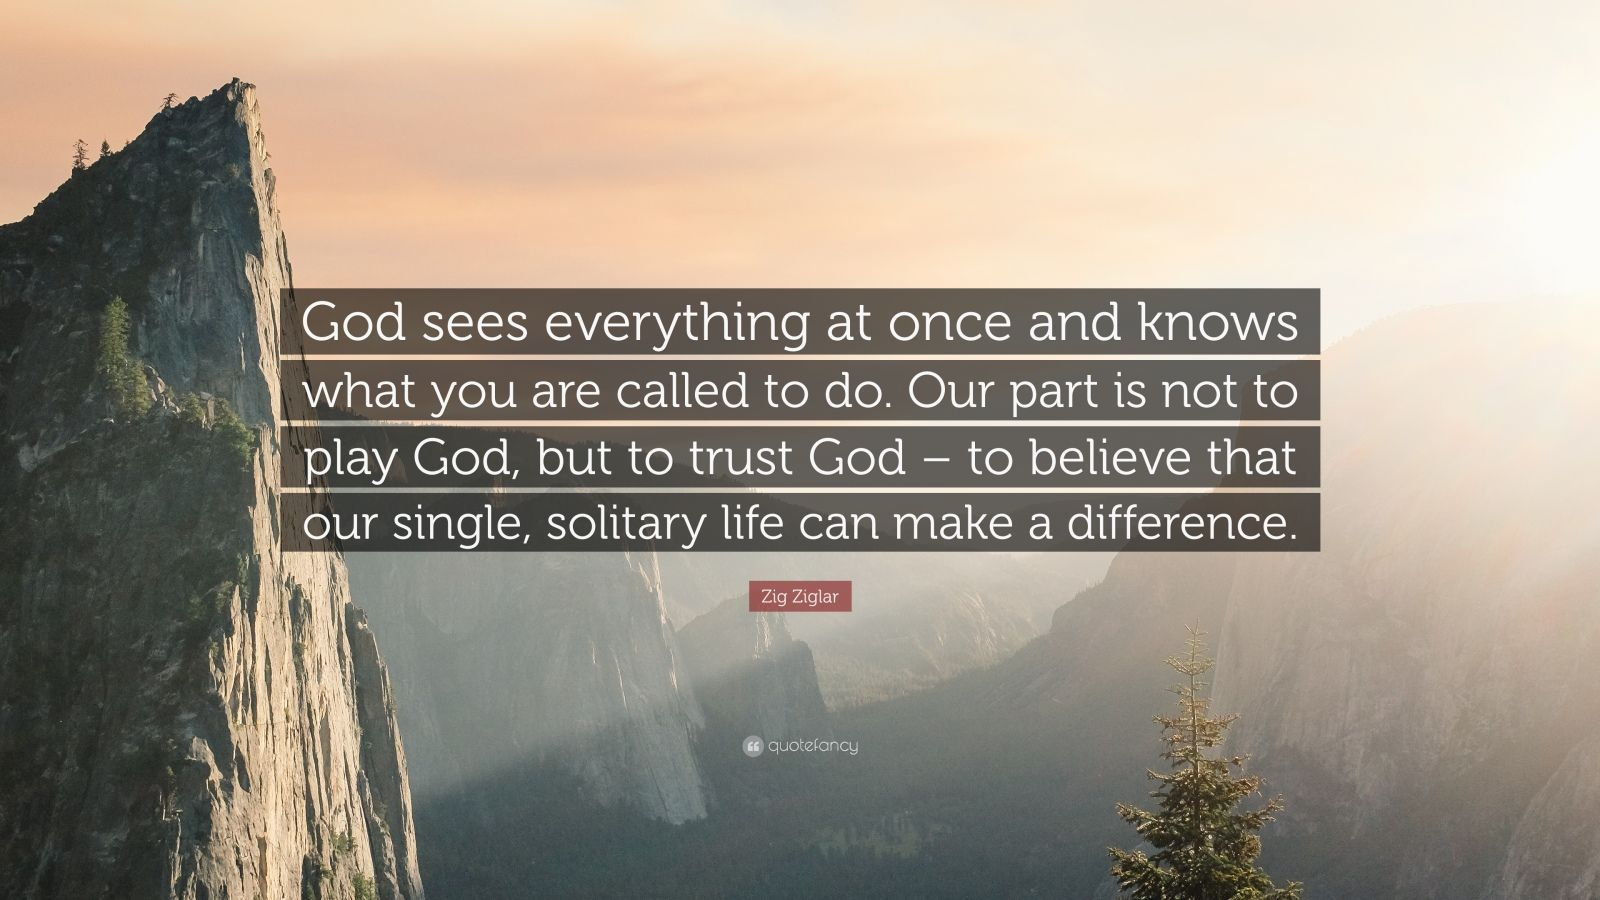 """Zig Ziglar Quote: """"God sees everything at once and knows what you are called to do. Our part is not to play God, but to trust God – to believe that our single, solitary life can make a difference."""""""